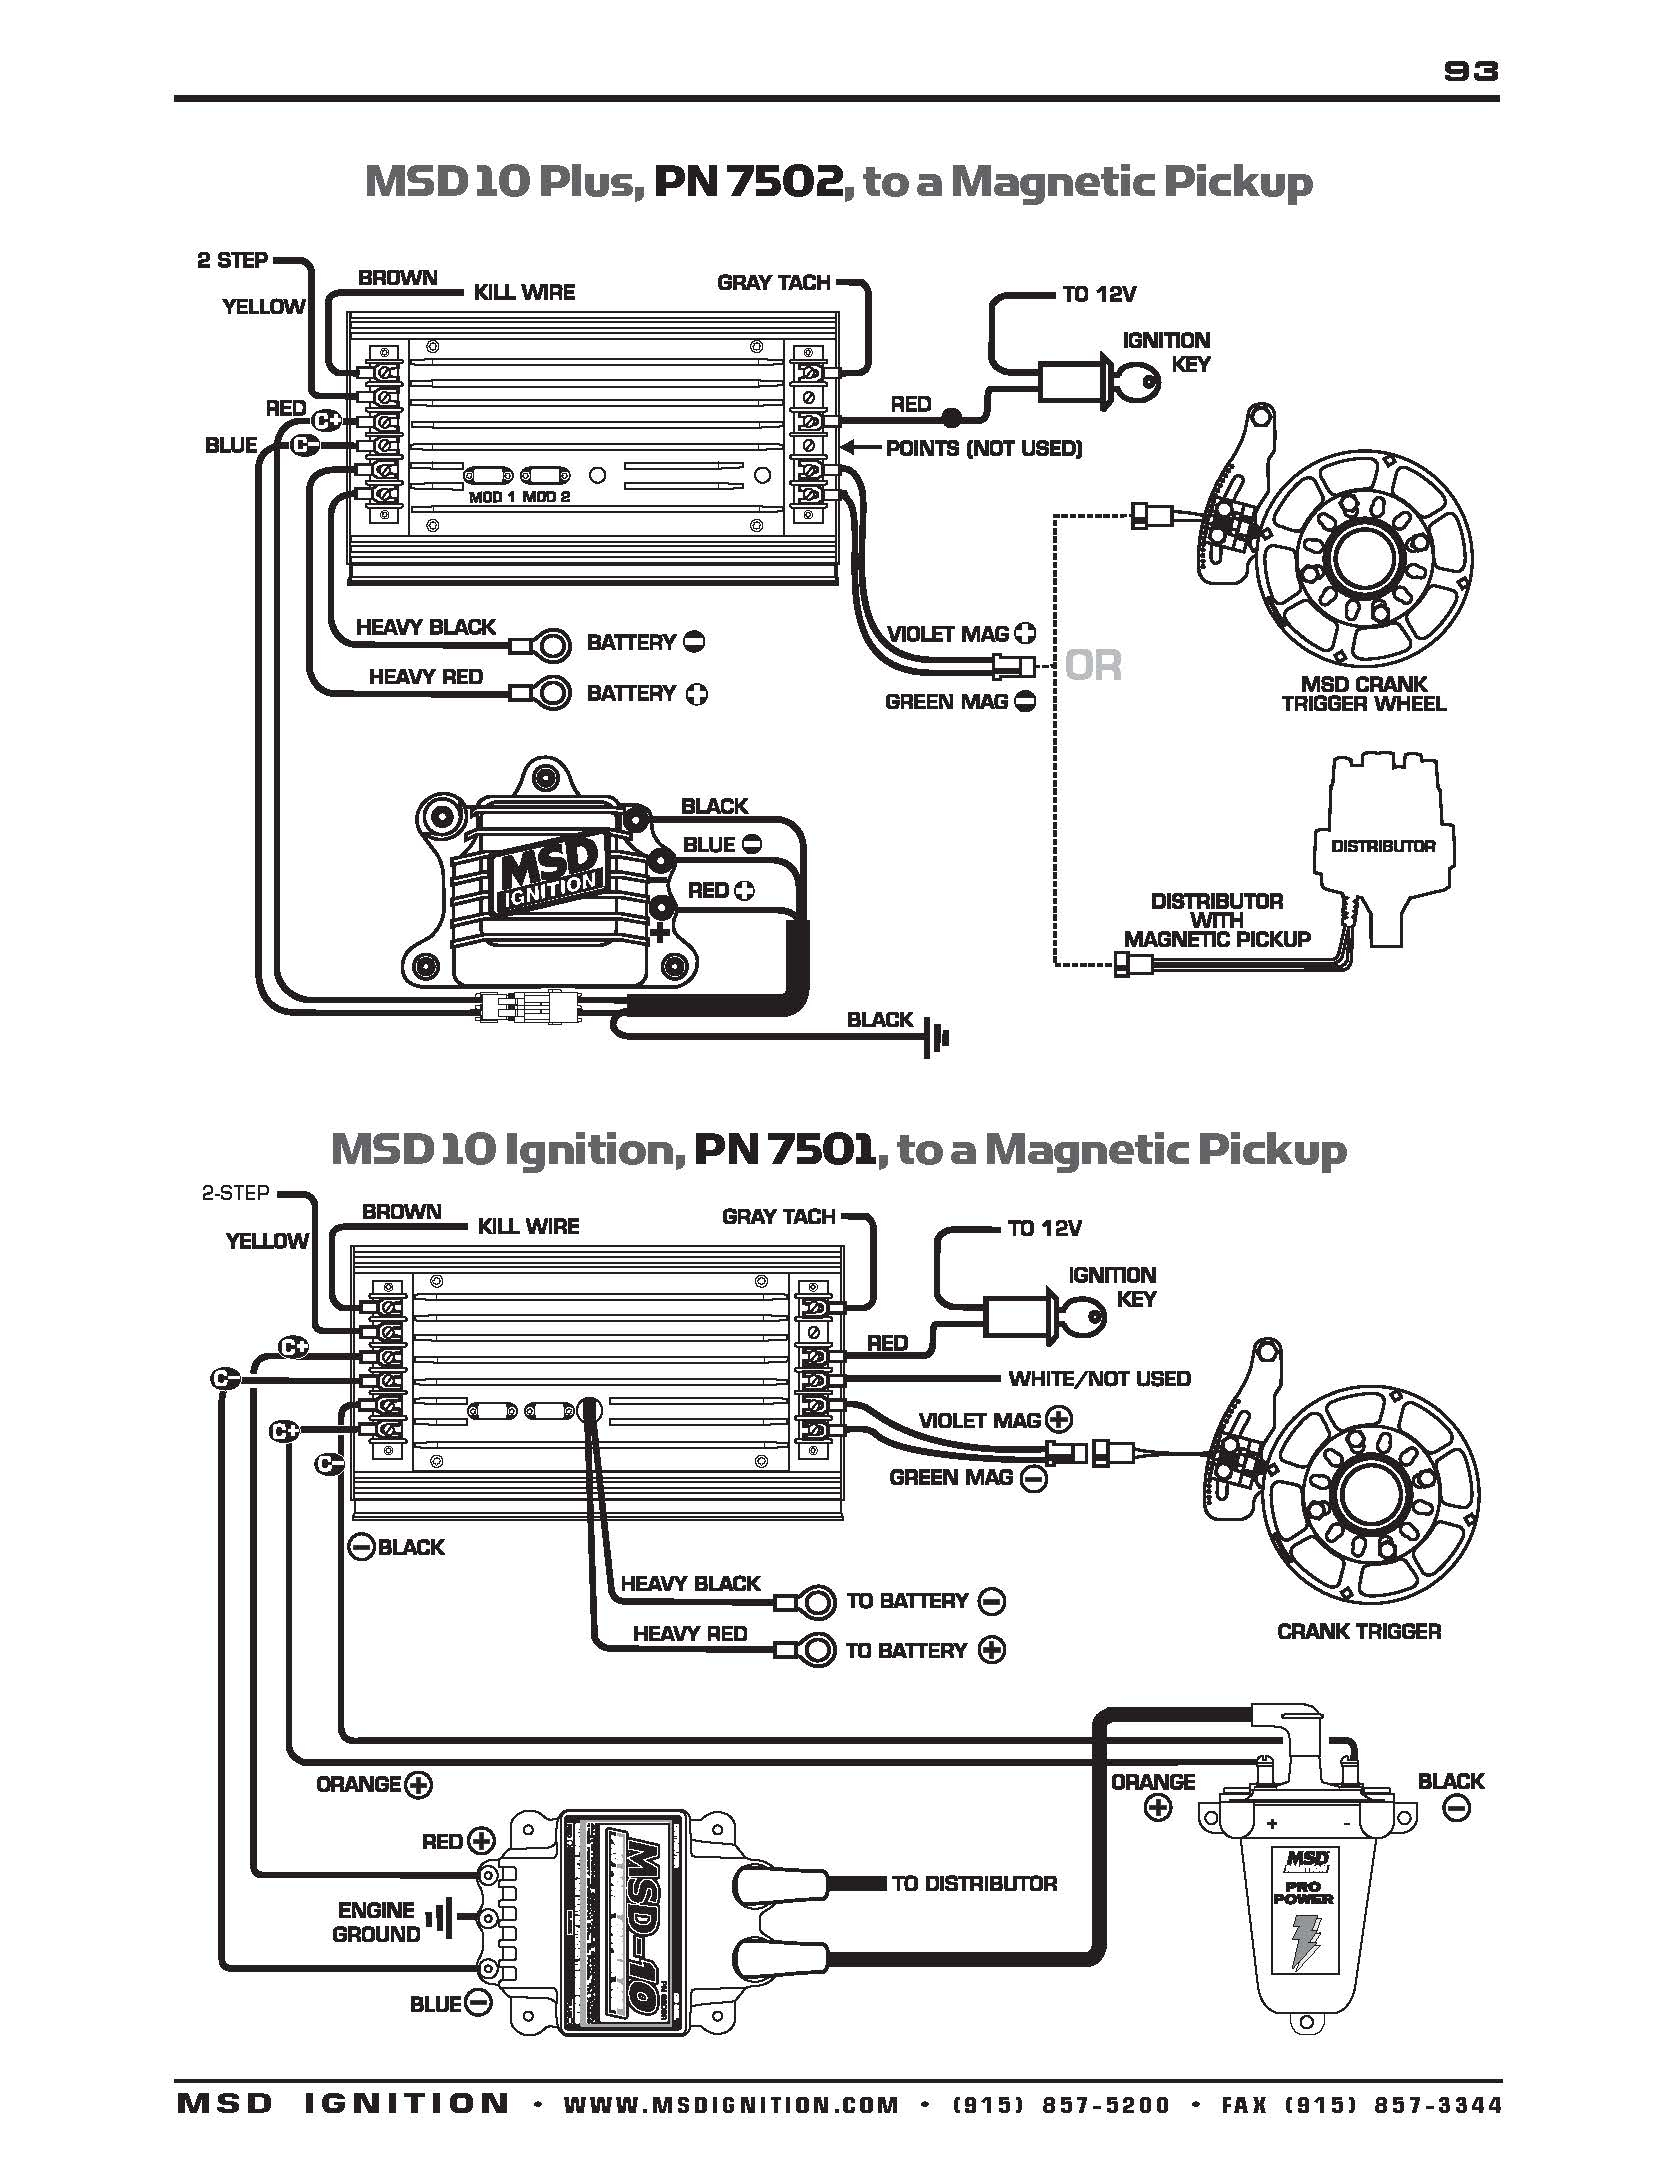 Ford Tfi Ignition Wiring Diagram | Wiring Library - Ford Ignition Control Module Wiring Diagram